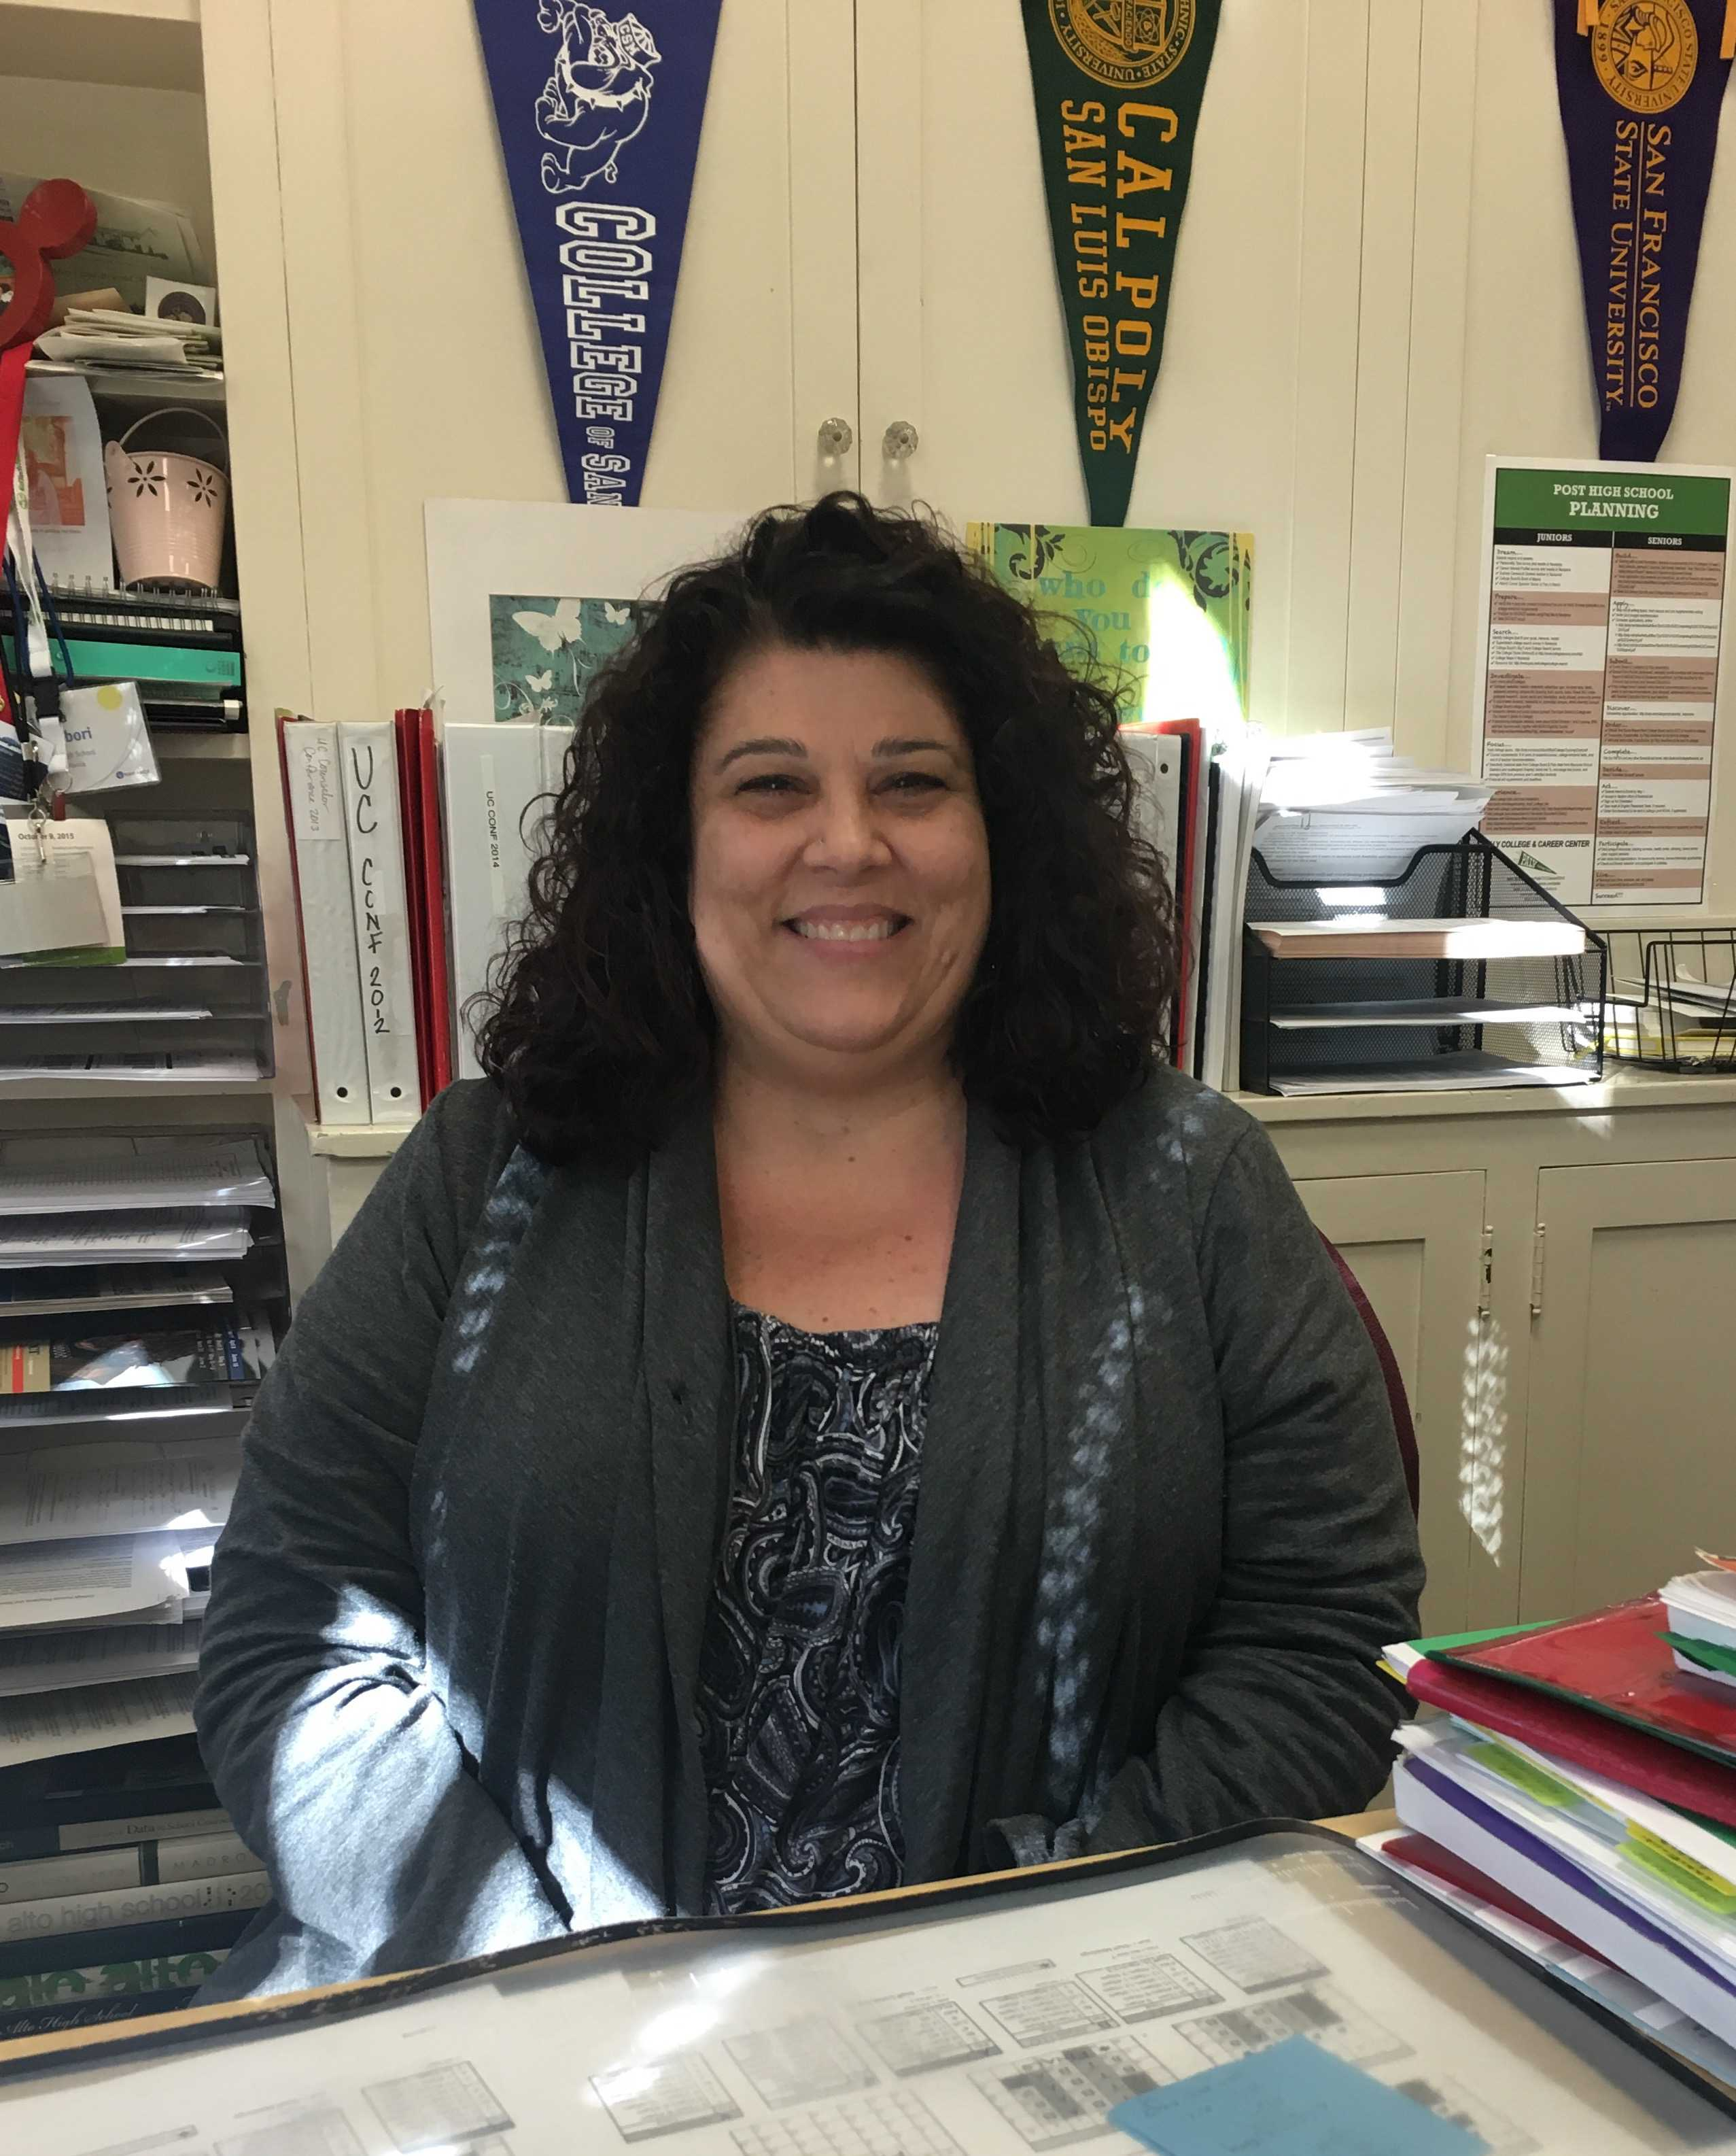 College counselor Sandra Cernobori has helped junior and senior students make post-high school plan for the last 11 years. Photo by Morgan Keller.